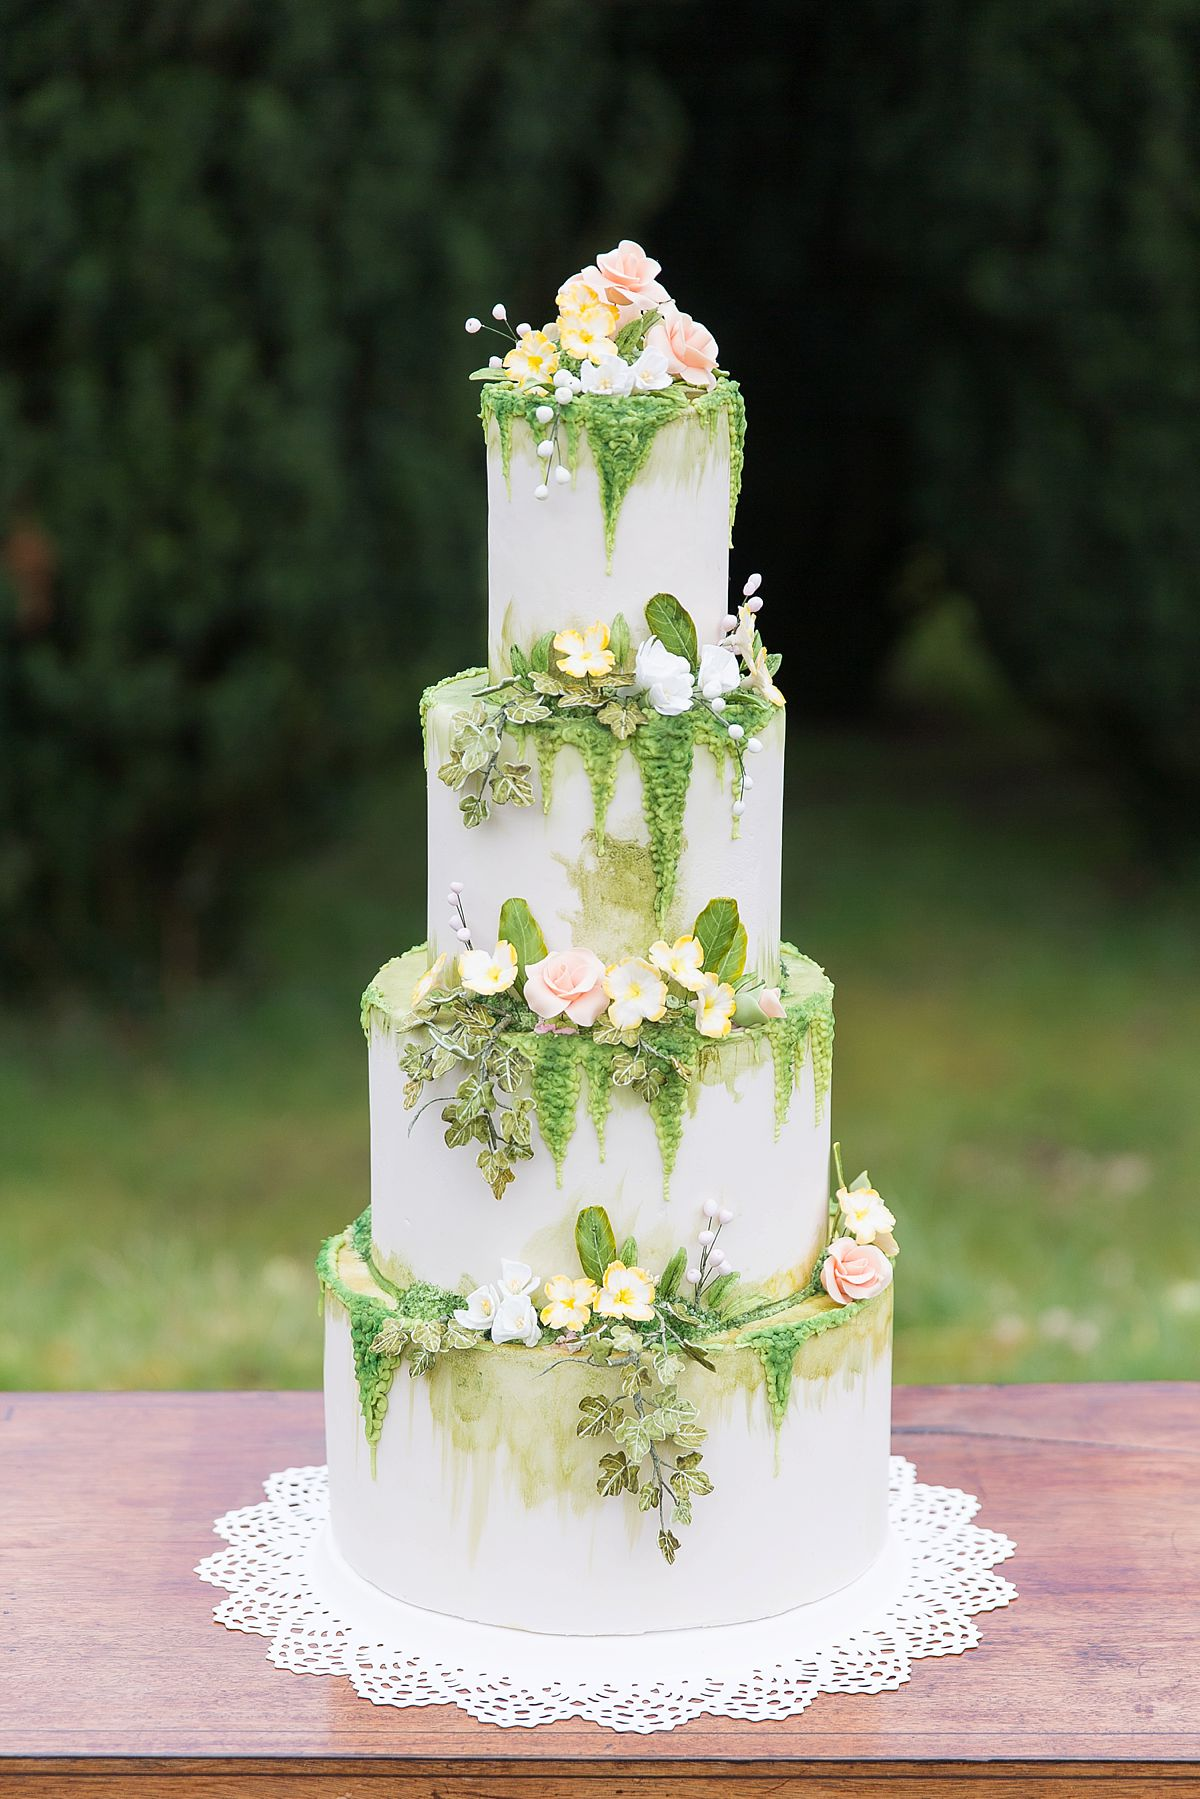 Sugar Mamas classic iced 4-tiers cake with fresh blooms and intricate handmade iced flowers and vines, finished with delicate hand painted detailing.